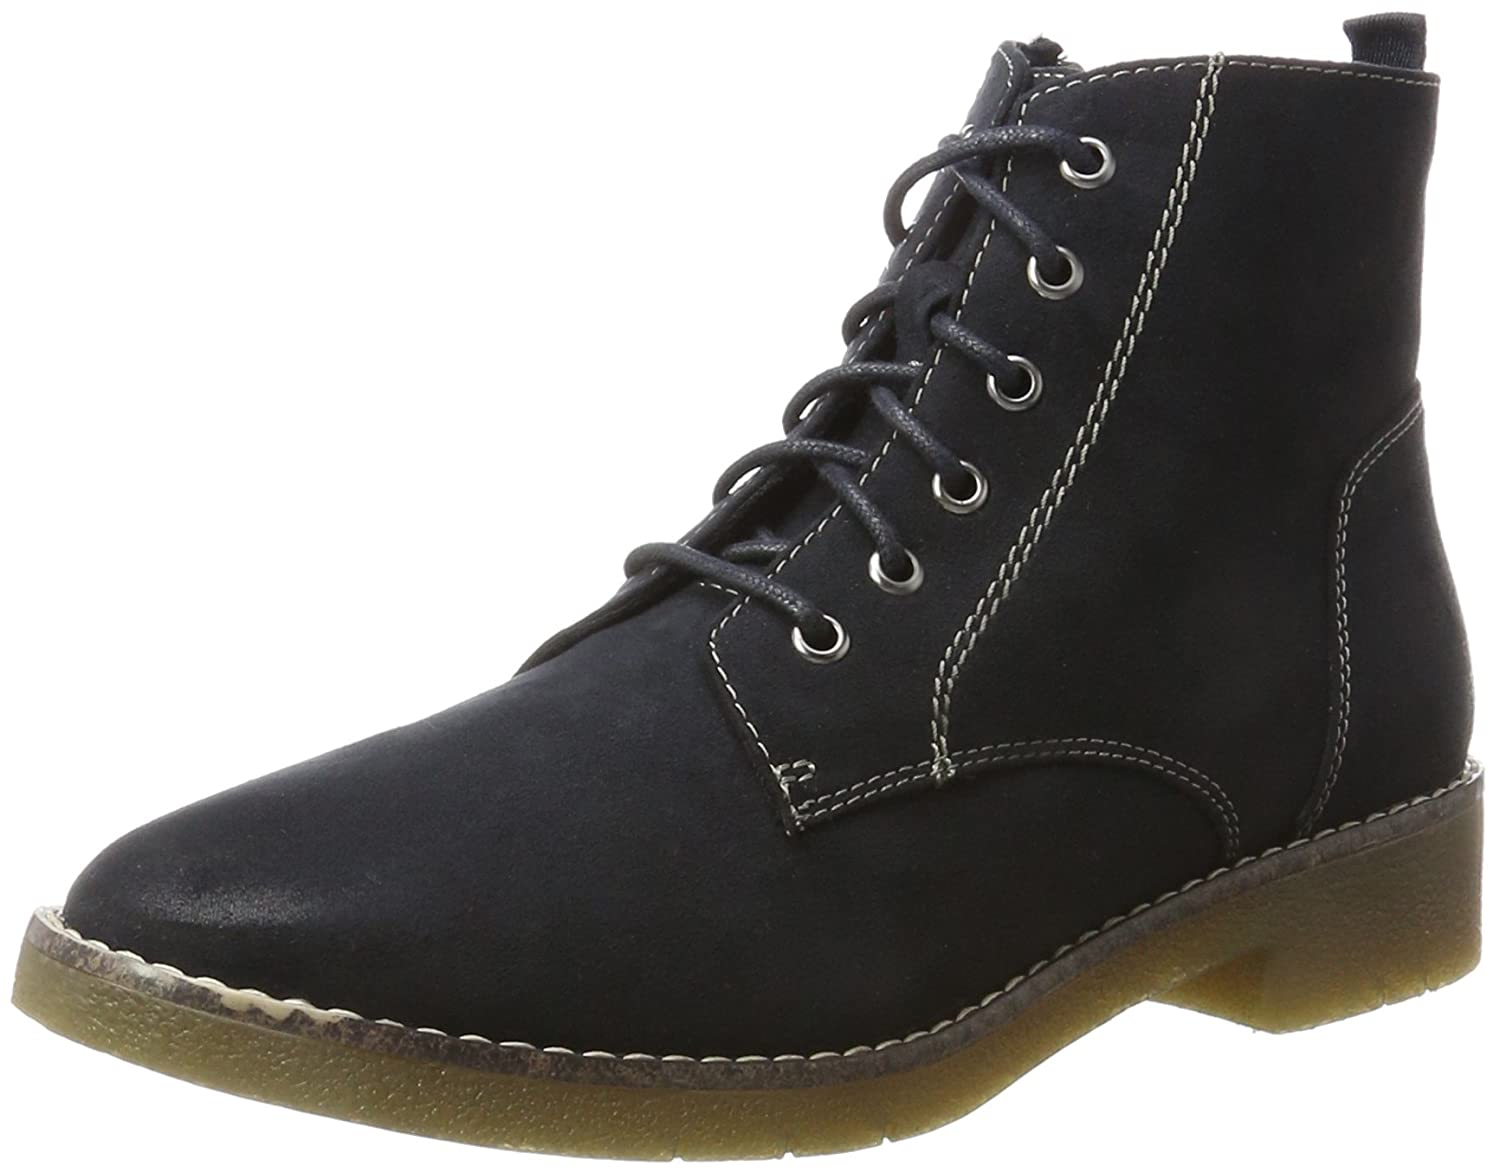 Tamaris 25100, B01N19UBZG Bleu Bottes Femme 14490 Bleu (Navy) 5b3fe3d - fast-weightloss-diet.space